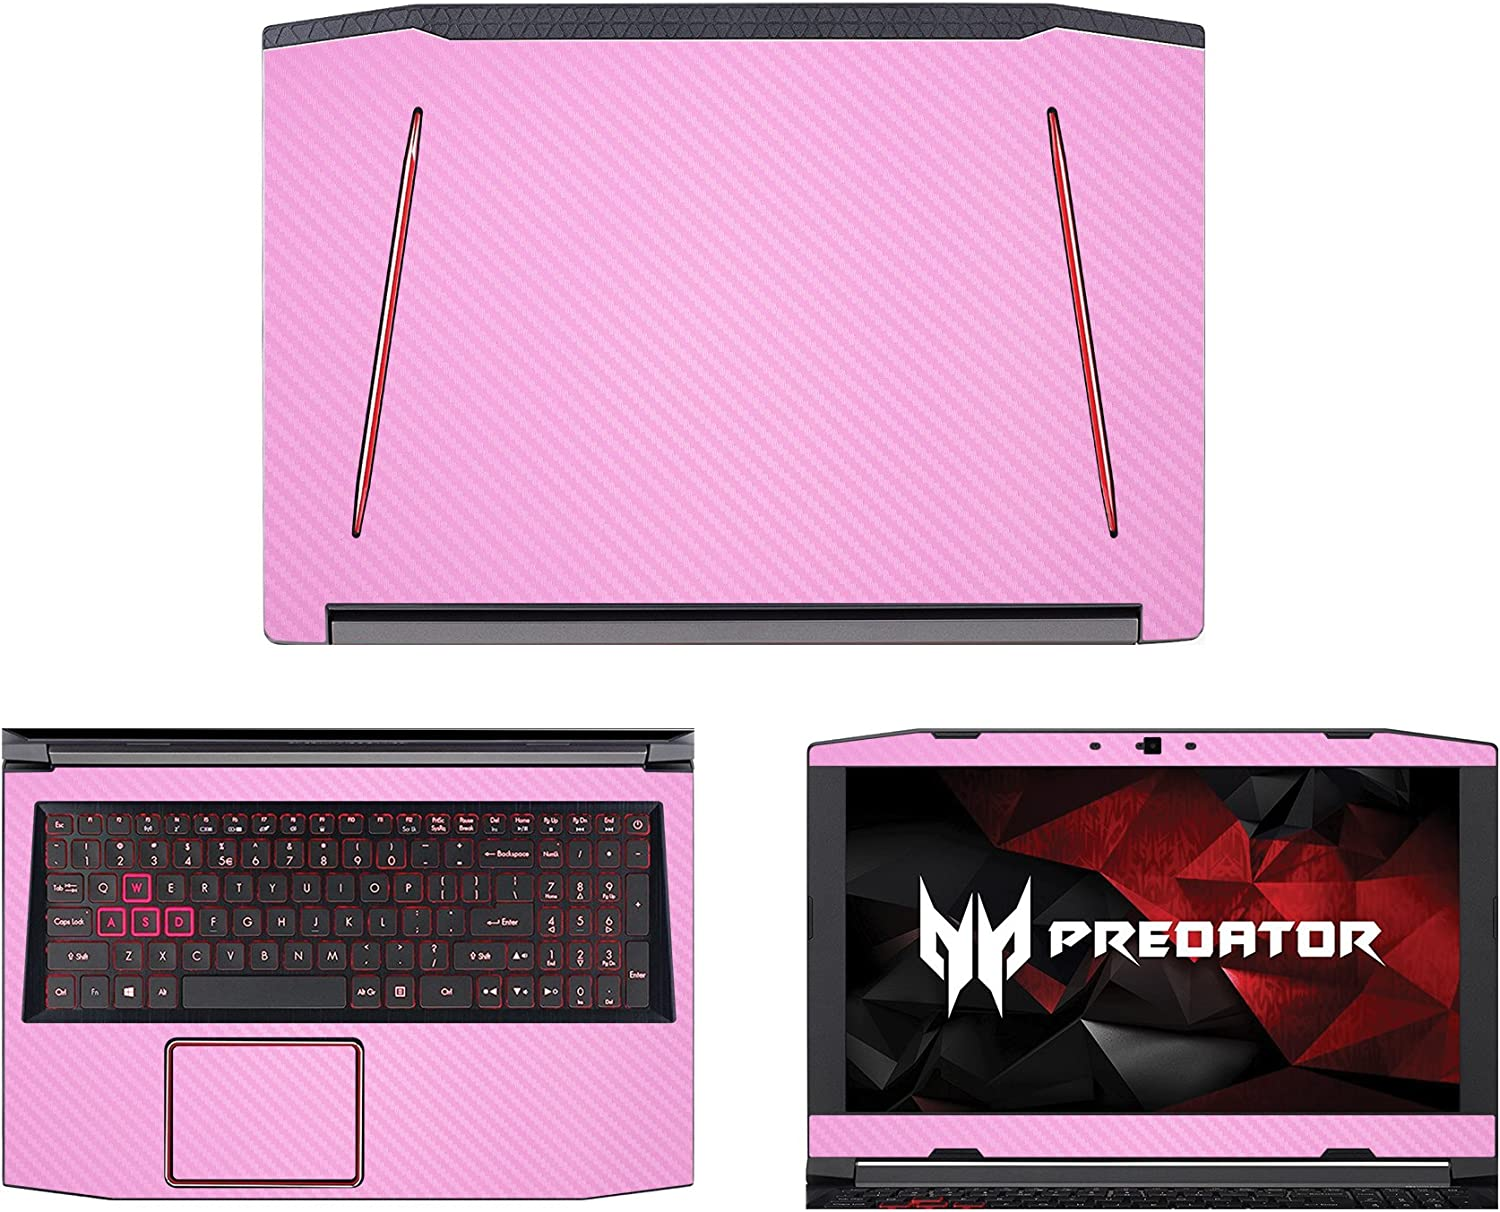 decalrus - Protective Decal for Acer Predator Helios 300 G3-571 (15.6